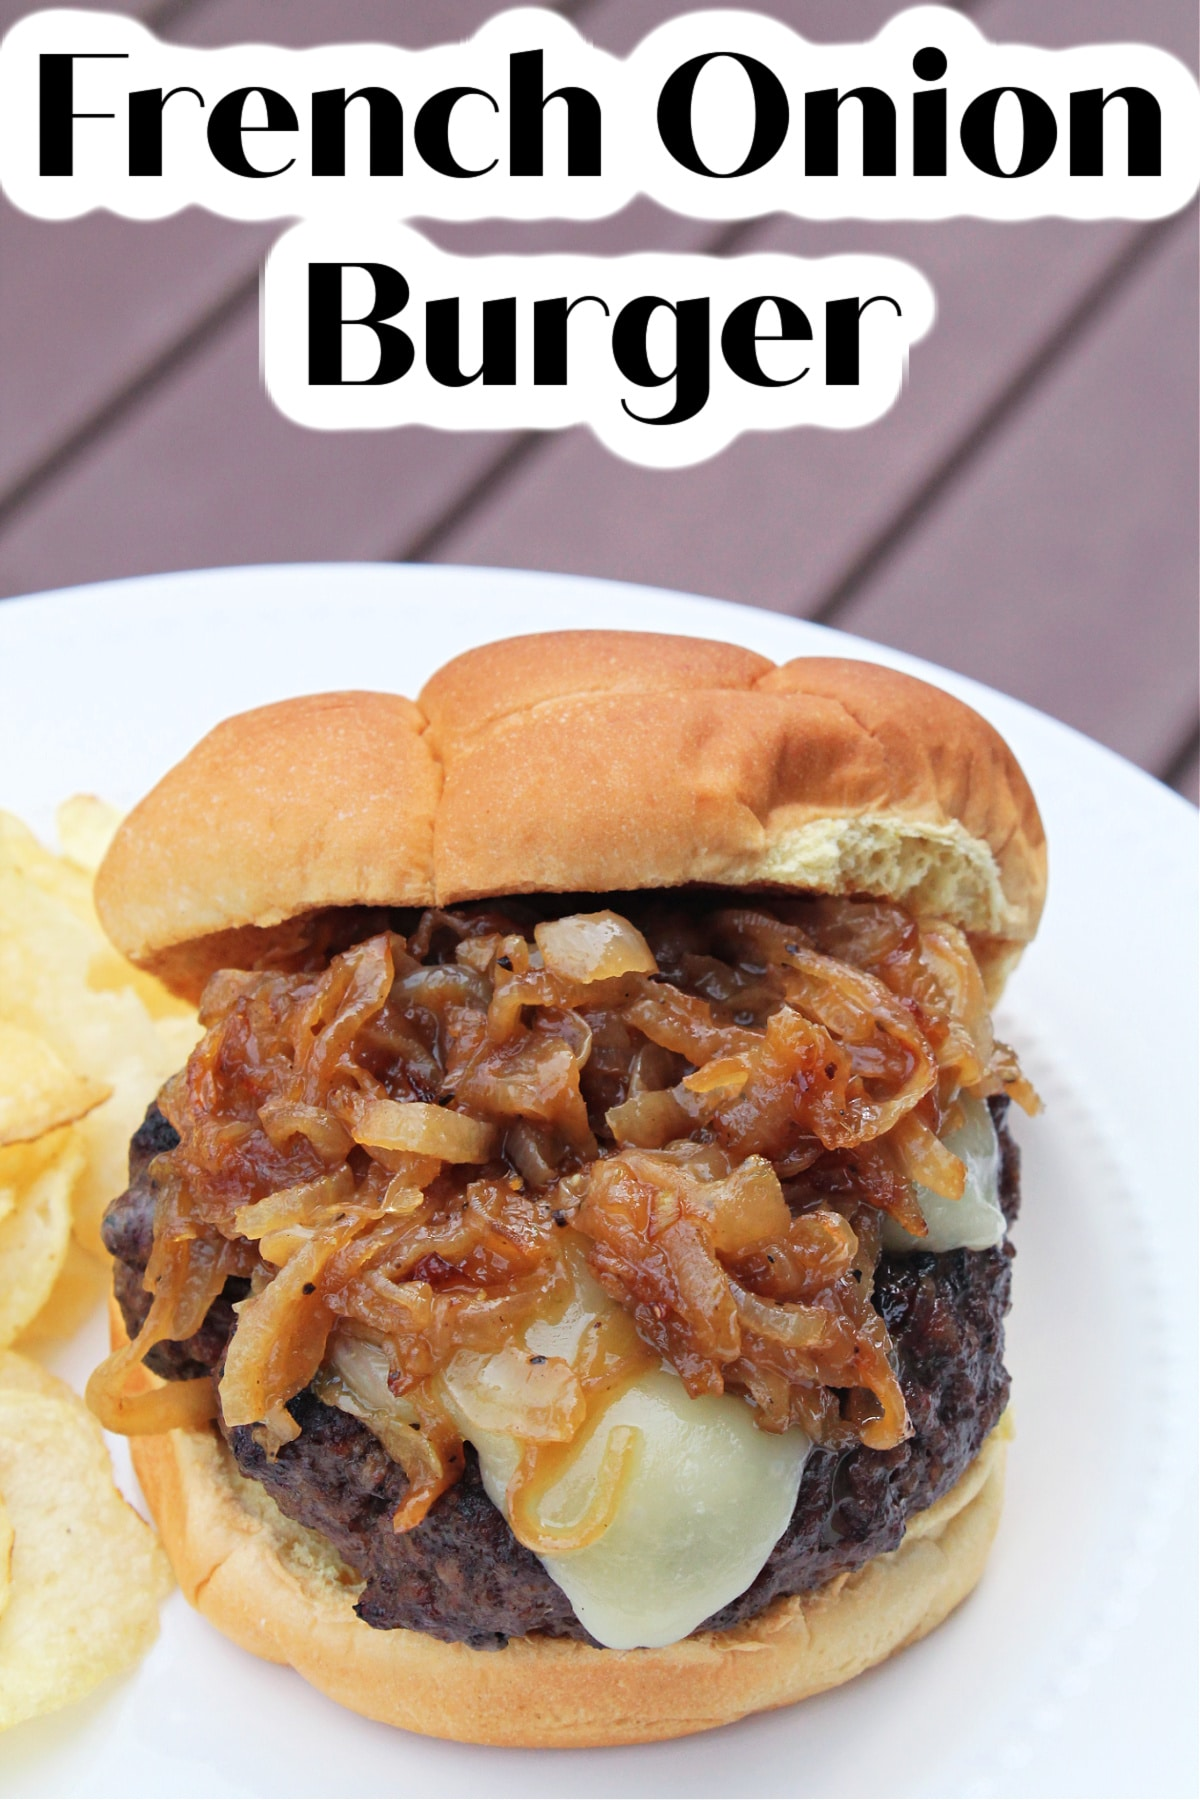 burger prepared with onions smothered on top with text reading french onion burger